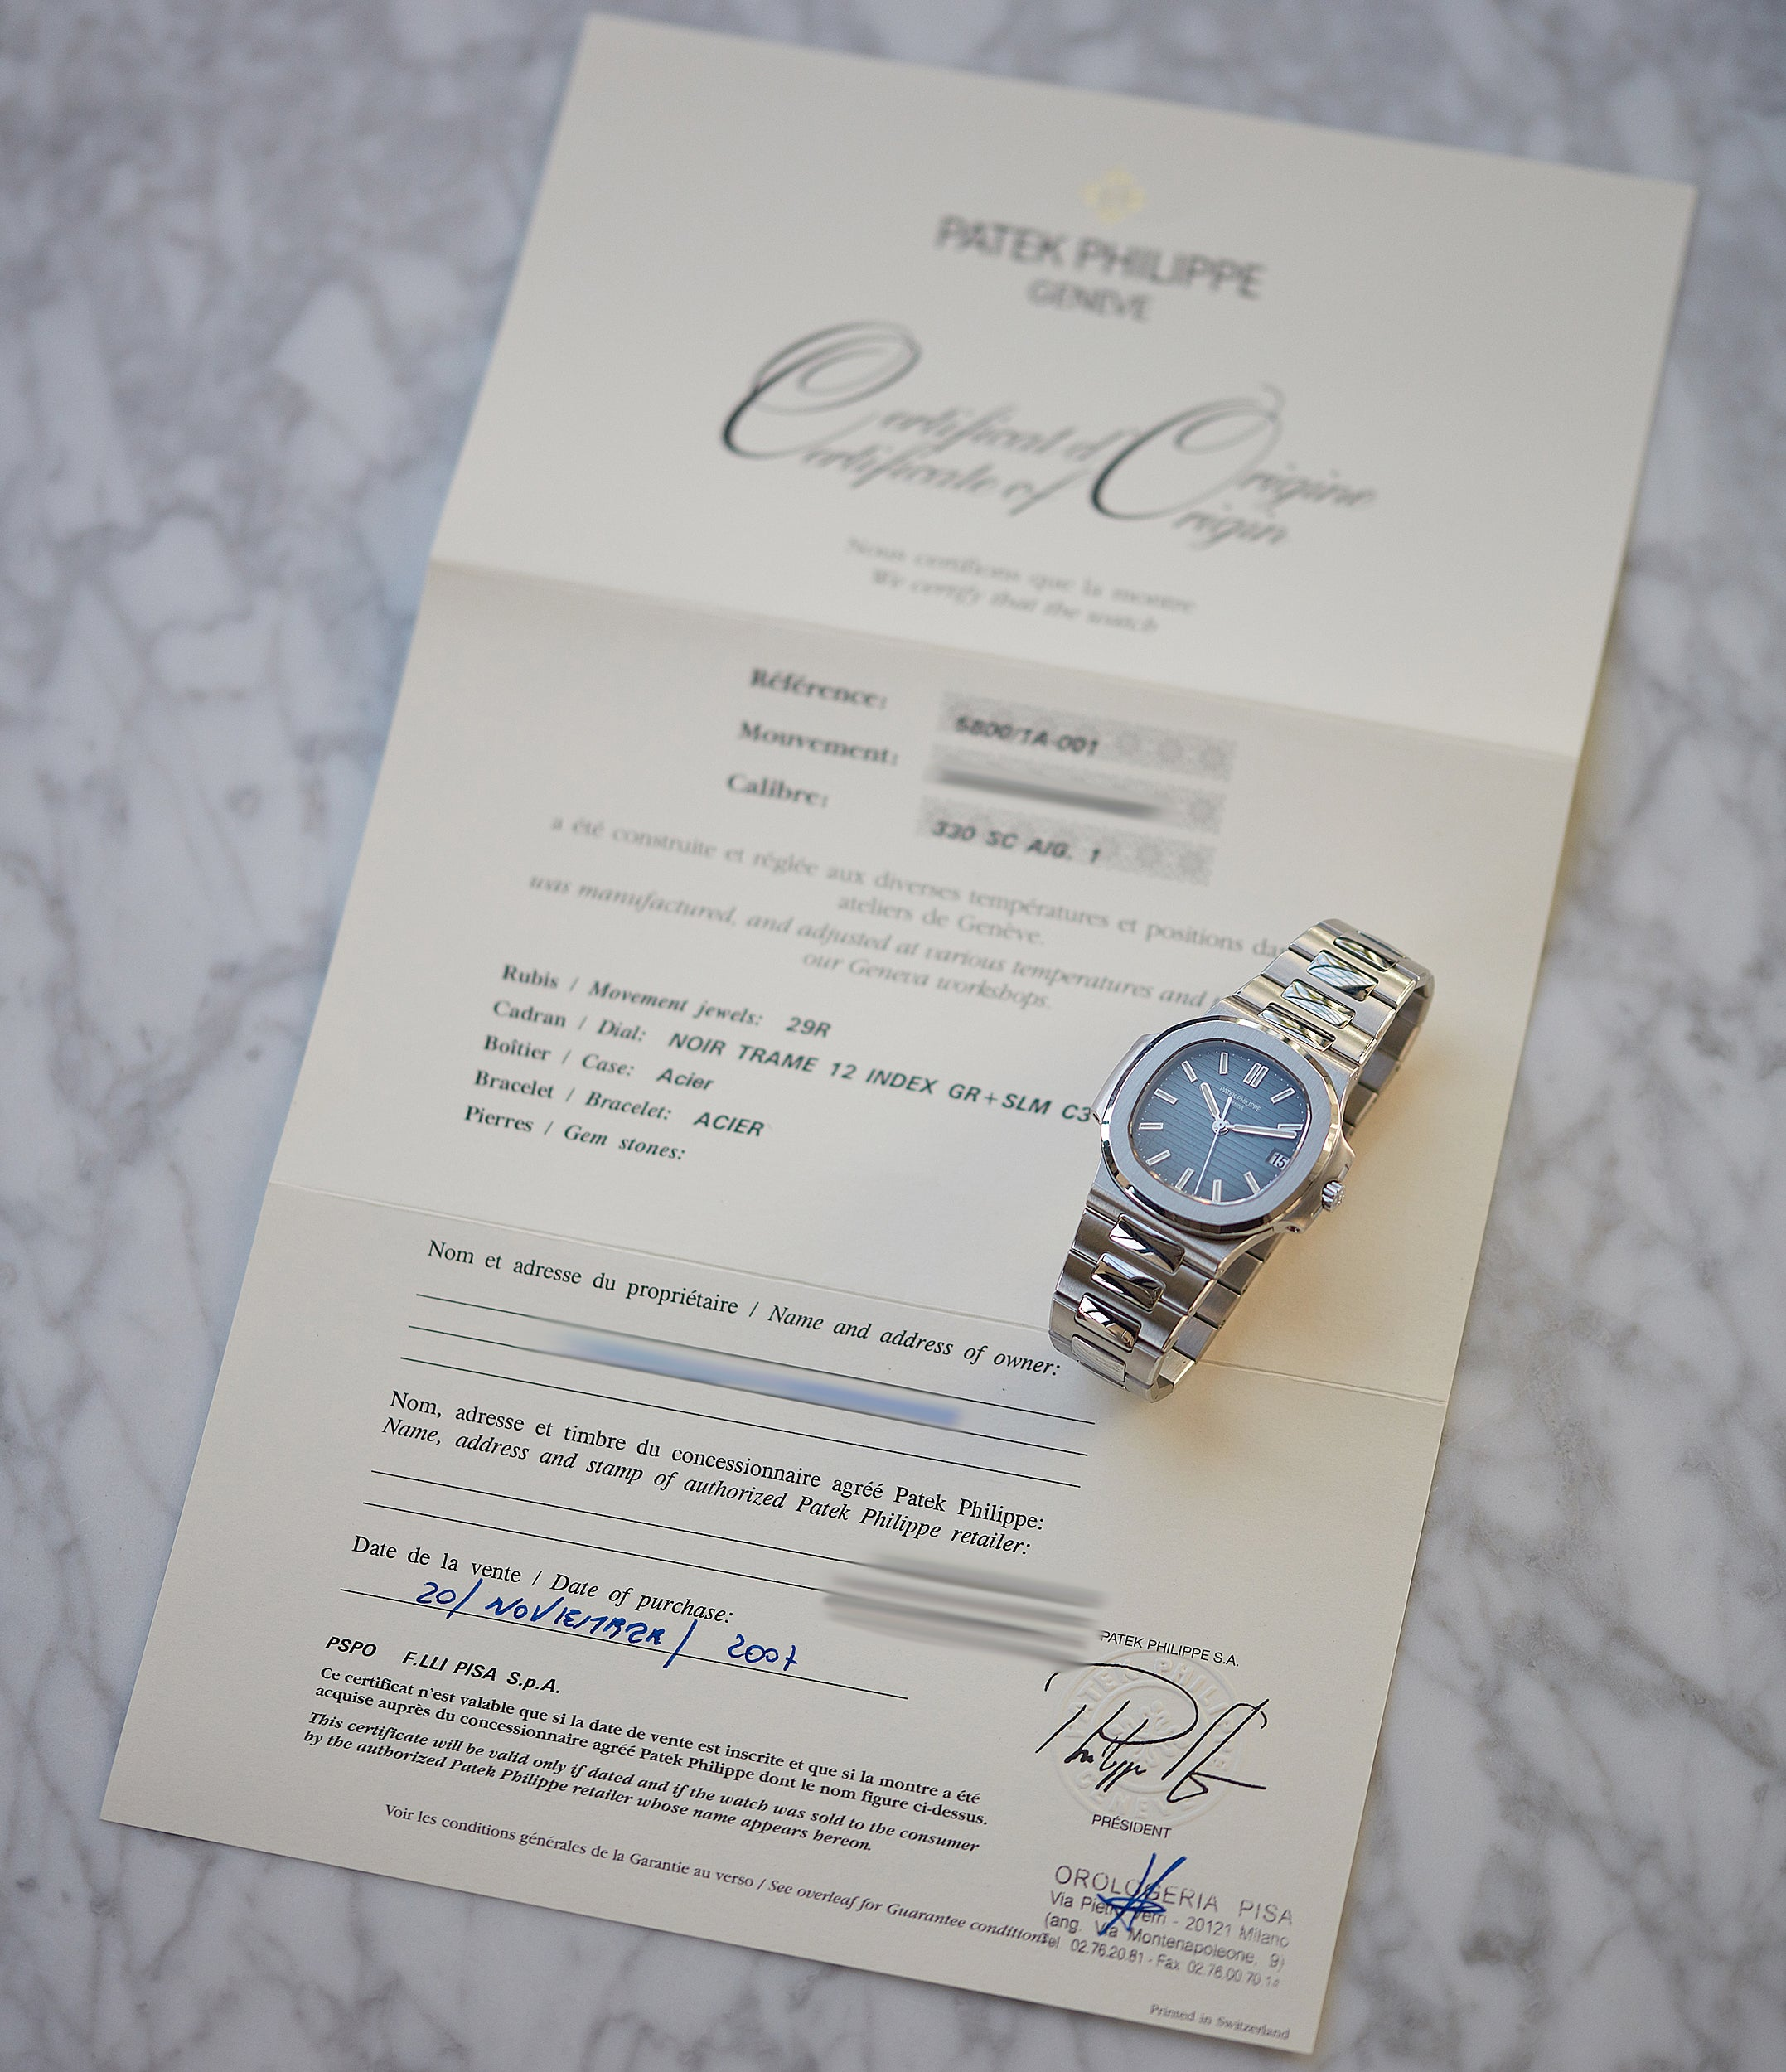 This Patek Philippe Nautilus 5800 comes with its original box, Certificate of Origin and product literature